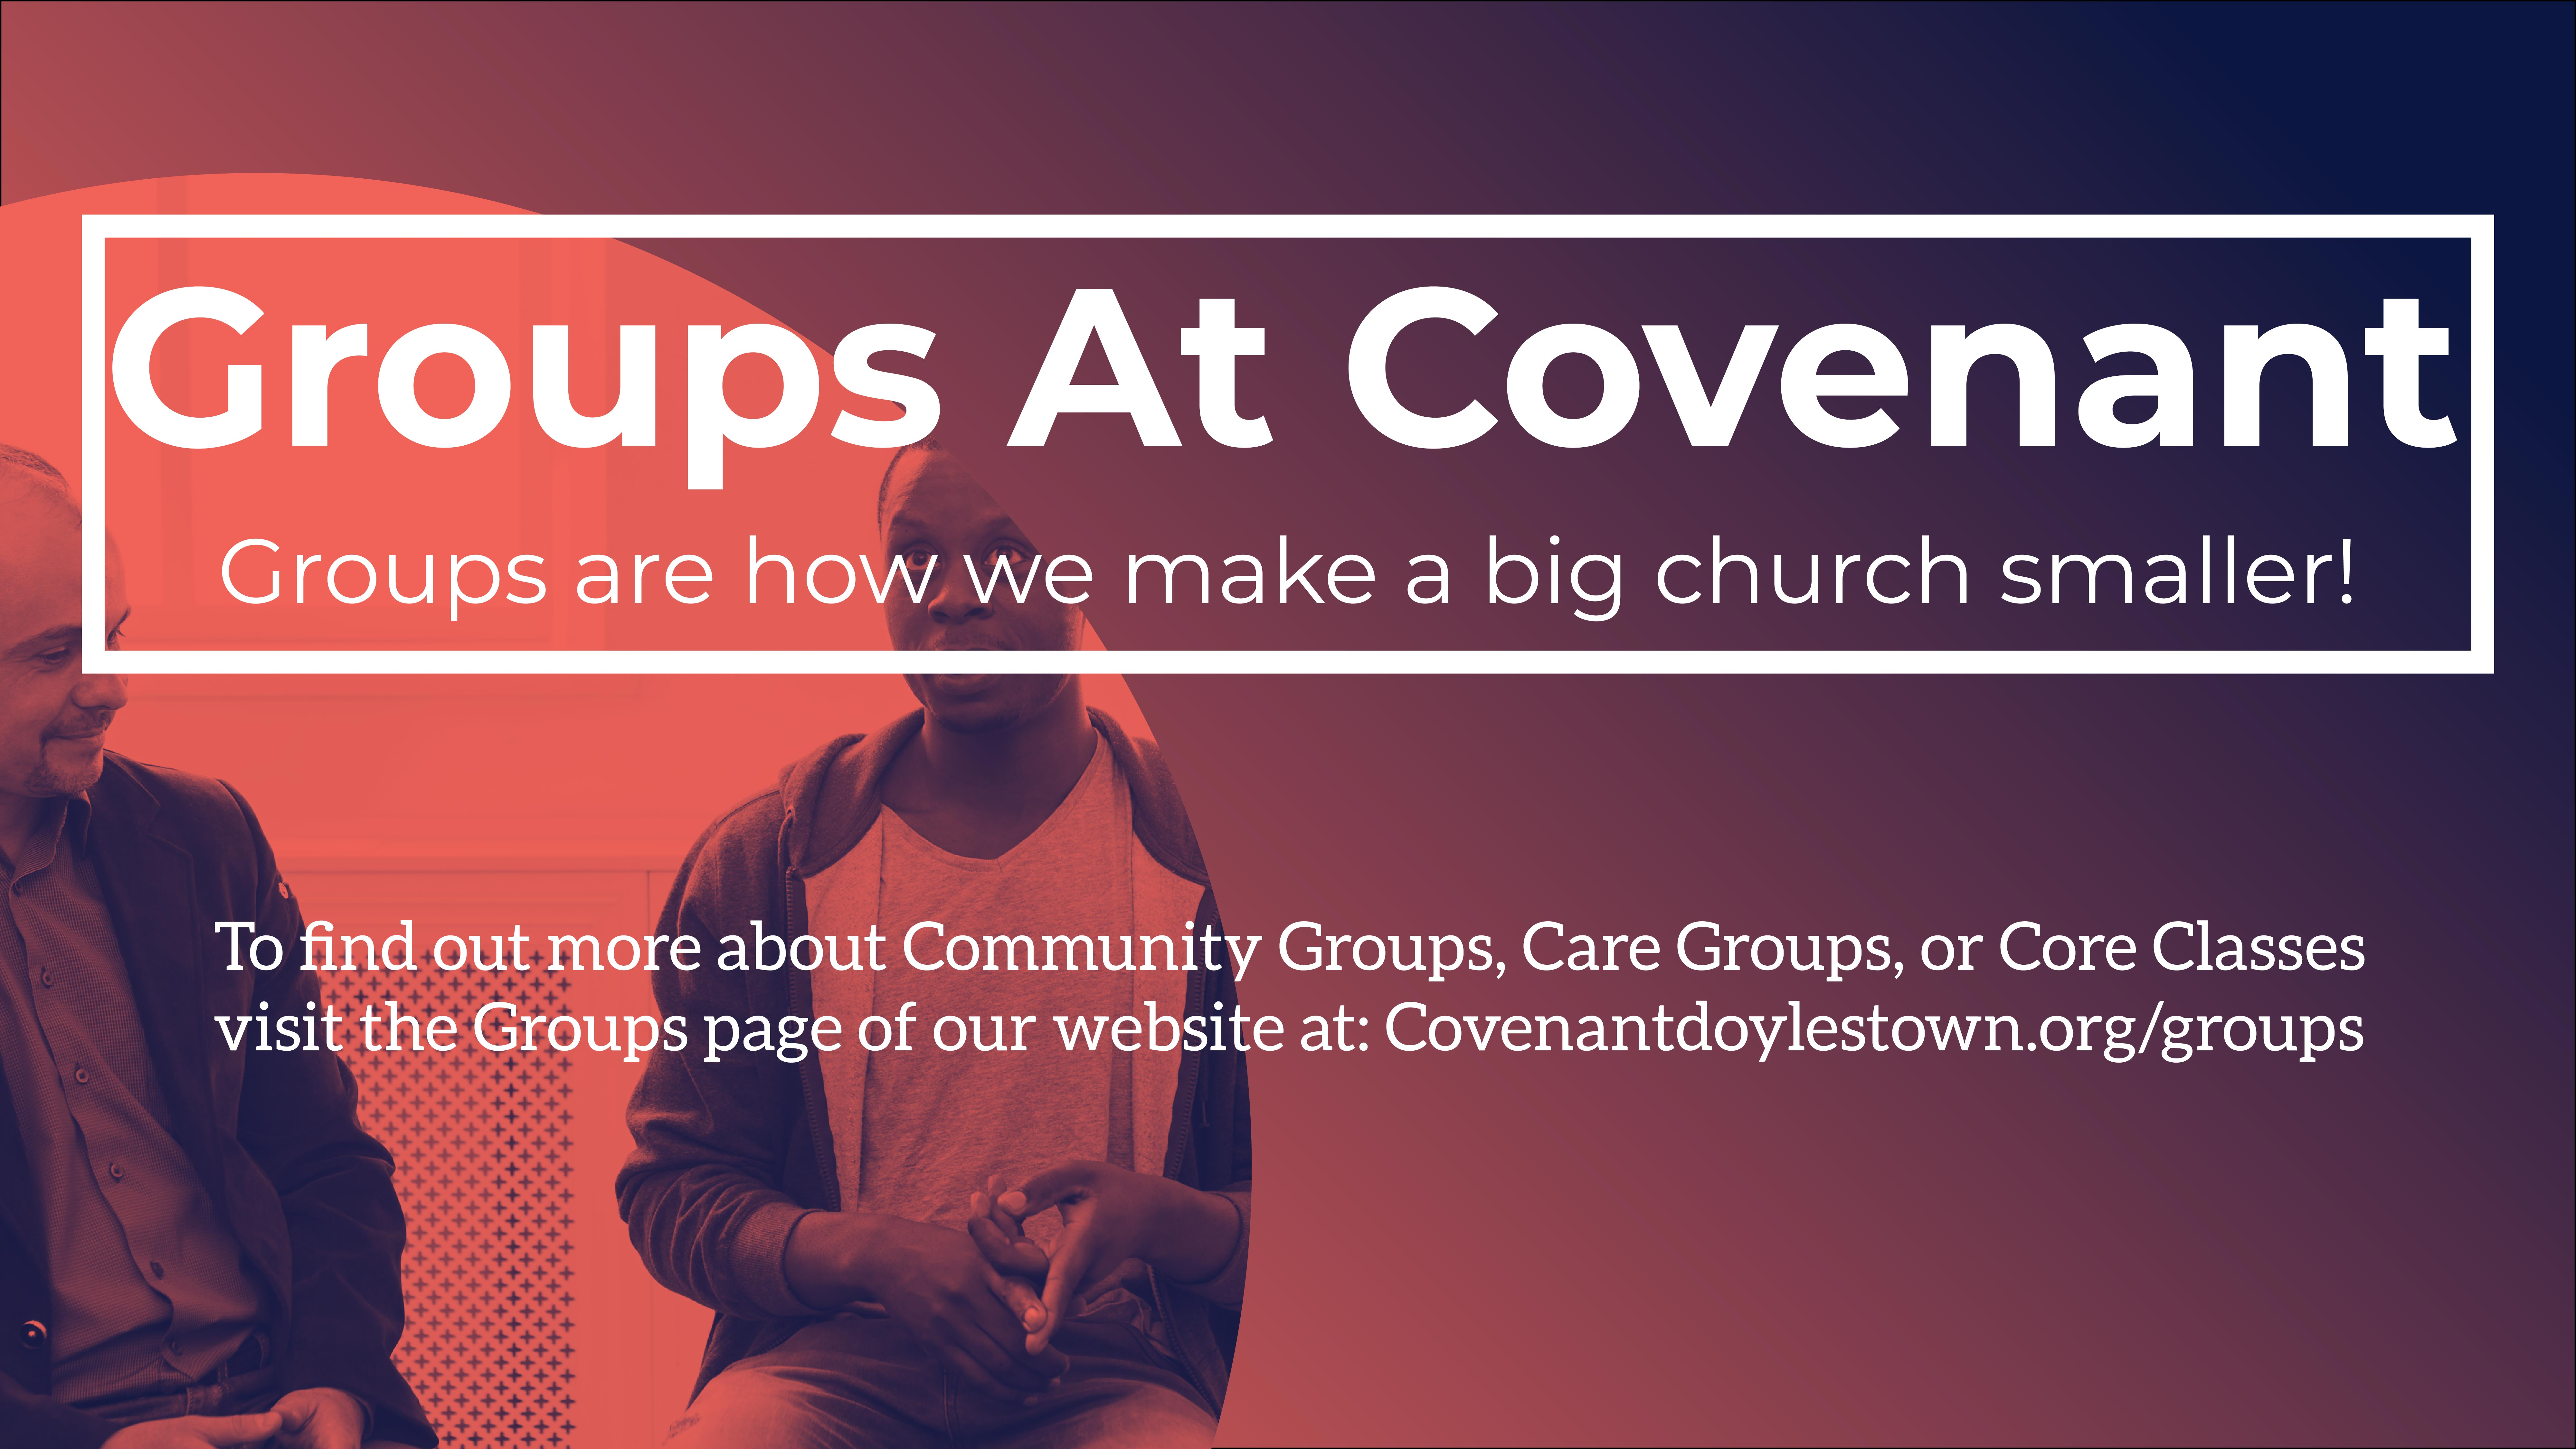 Groups At Covenant